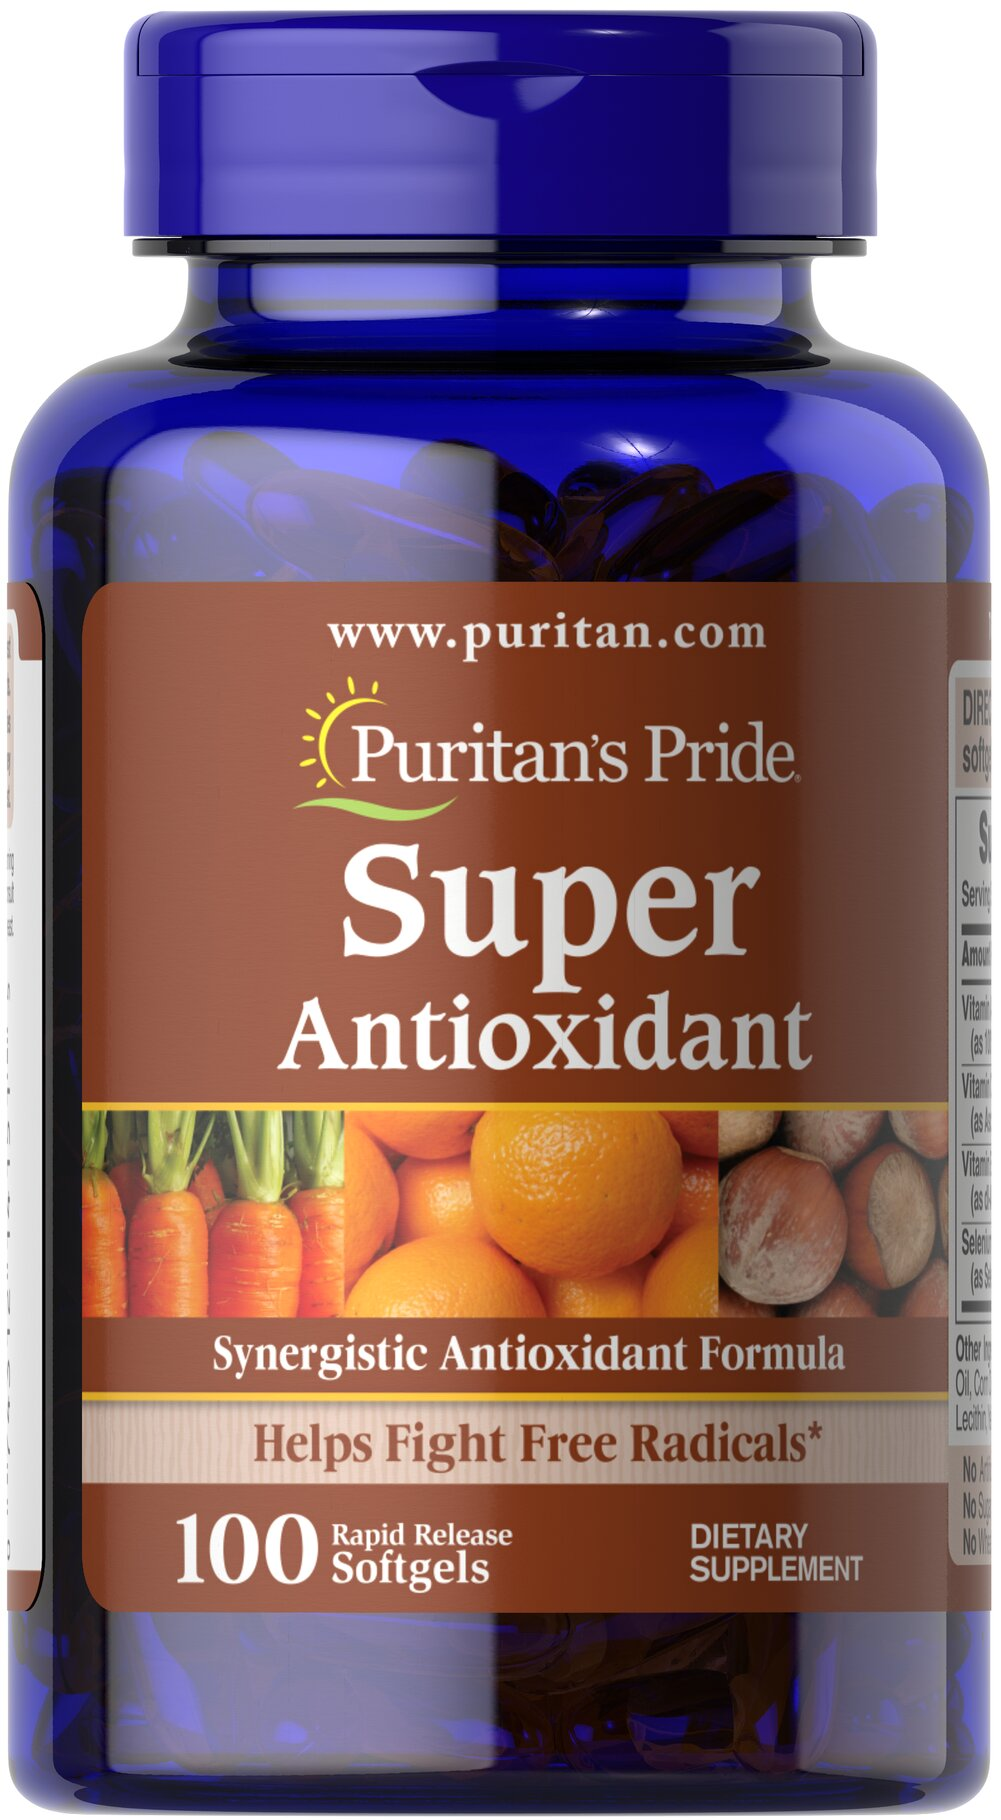 Super Antioxidant Formula** <p>The essential nutrients in our Super Antioxidant Formula are some of the best antioxidants available for fighting free radicals.** Free radicals can be produced from things like car exhaust, smoking, even your own body — plus they contribute to oxidative stress, which can lead to premature aging.** Vitamins A, C, and E and the mineral, Selenium, combat the harmful effects of these free radicals.**</p> 100 Softgels  $29.99